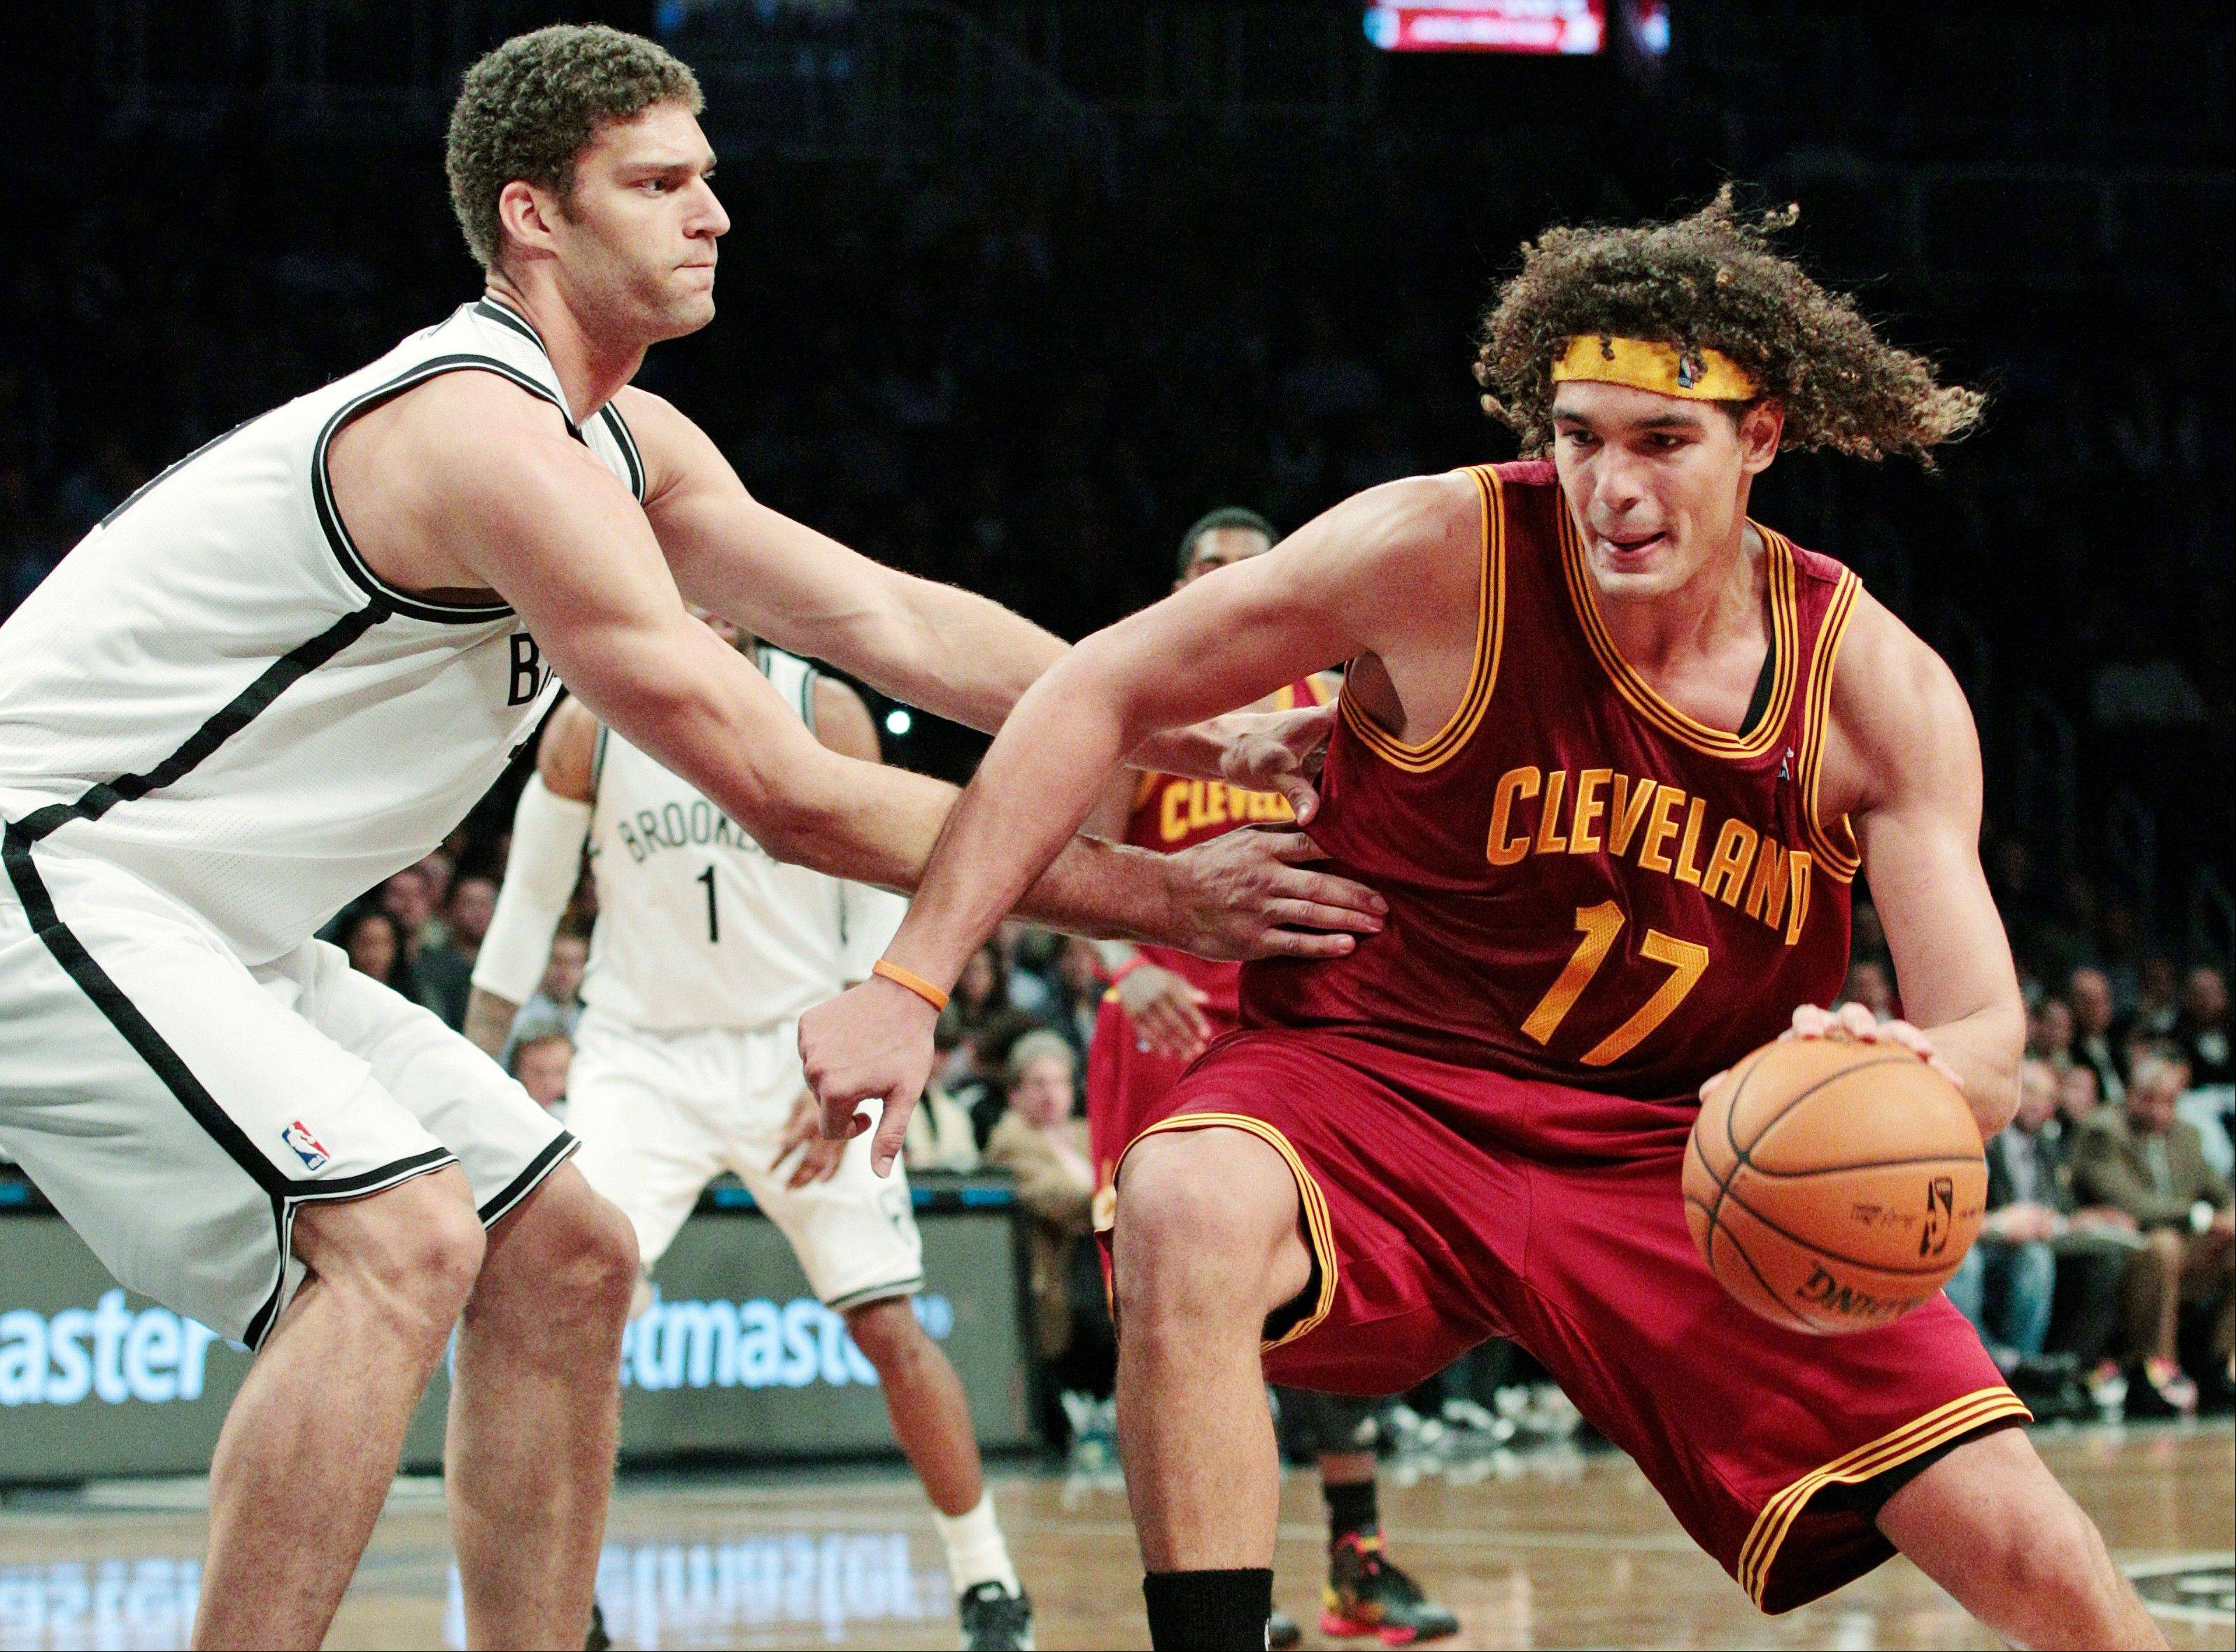 The Brooklyn Nets' Brook Lopez defends the Cleveland Cavaliers' Anderson Varejao Tuesday during the second half in New York. The Nets won 114-101